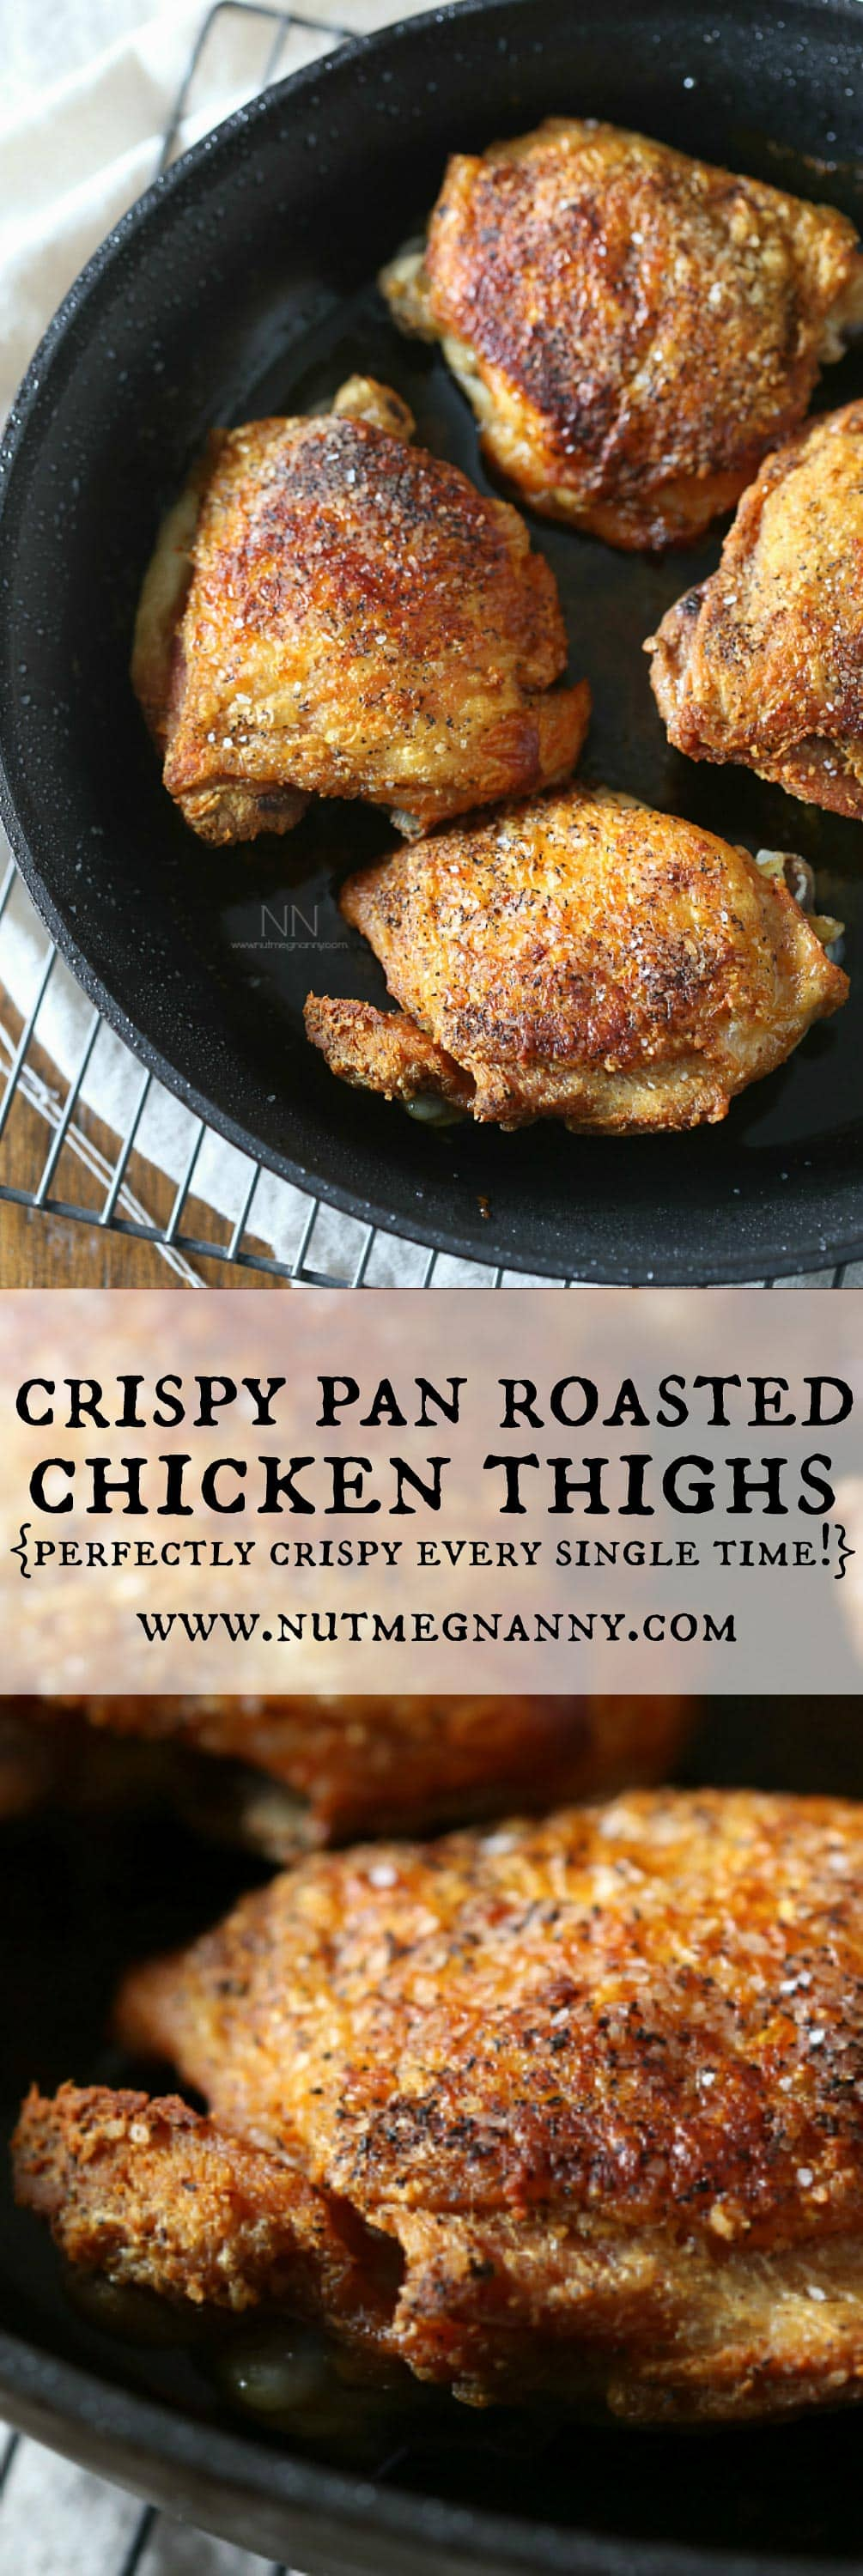 crispy pan roasted chicken thighs in a photo collage